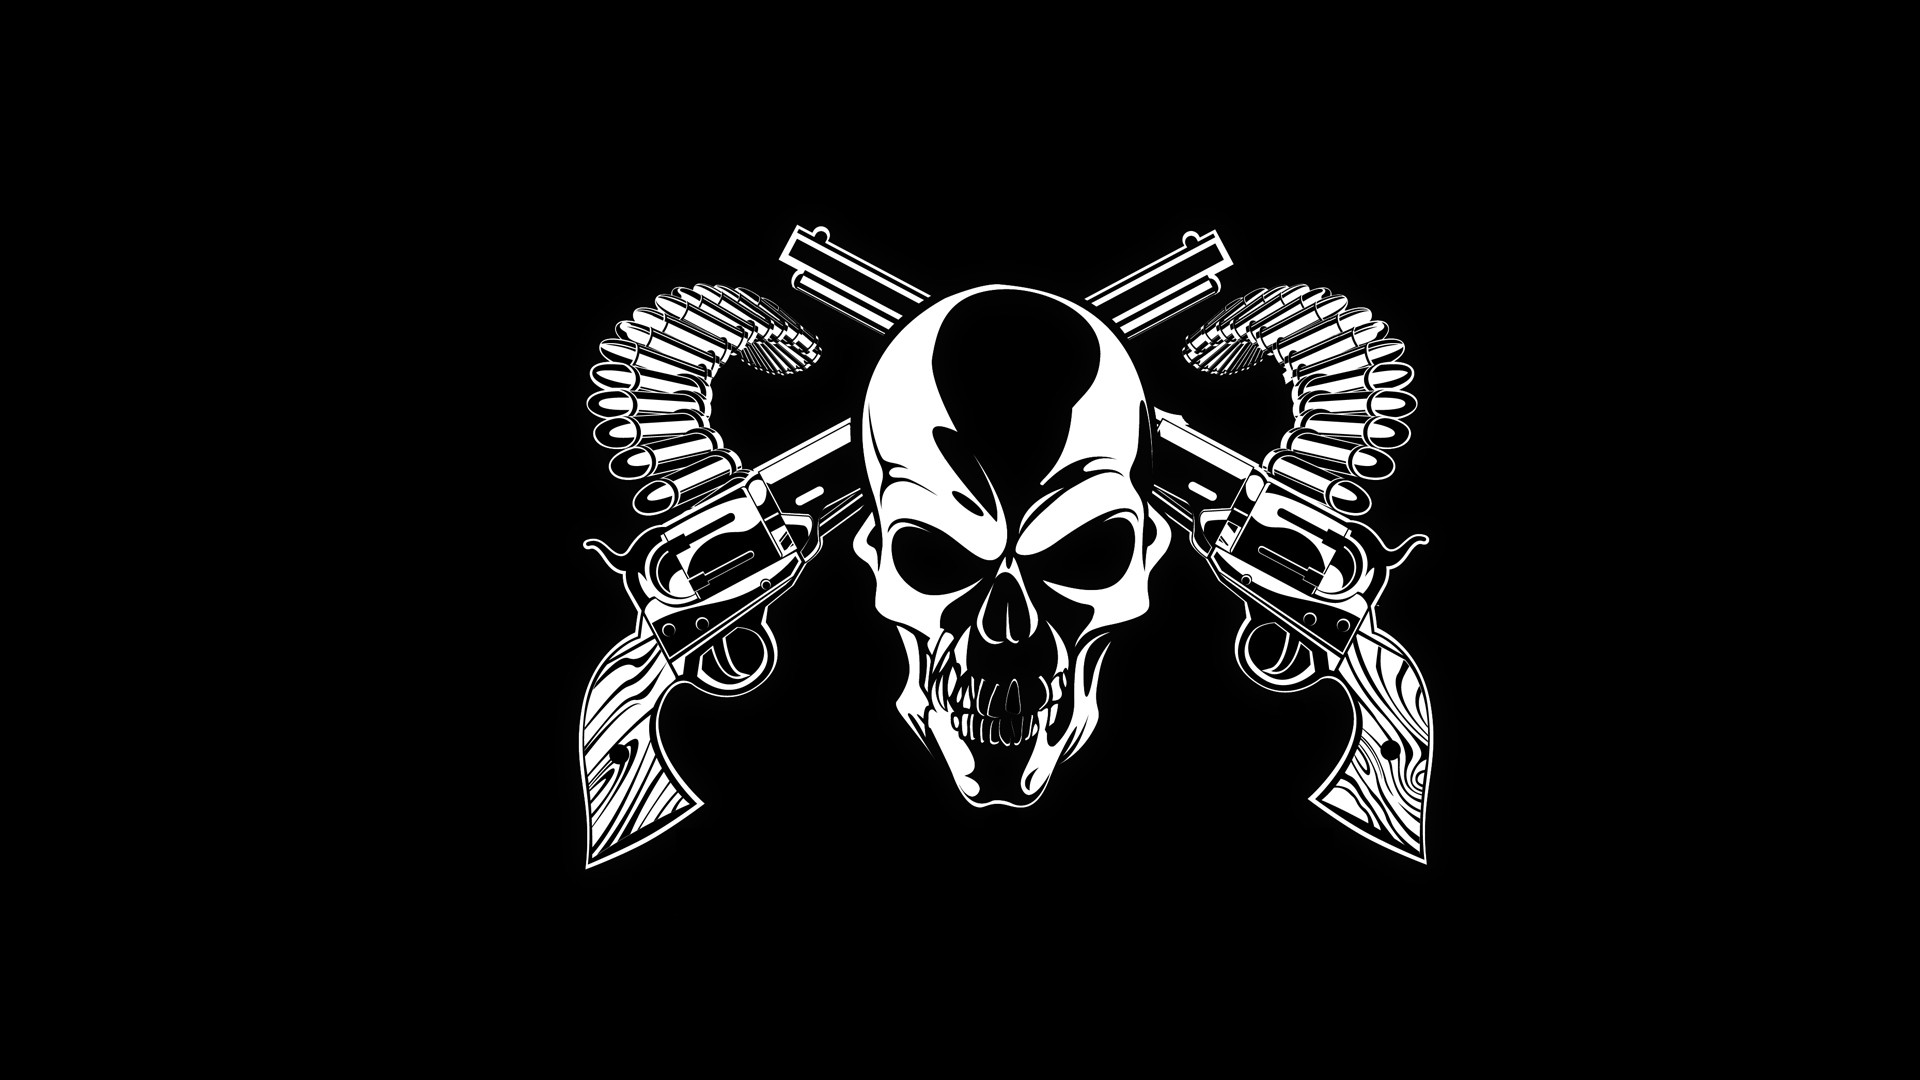 Res: 1920x1080, Photo Collection Cool Punisher Wallpapers Skull